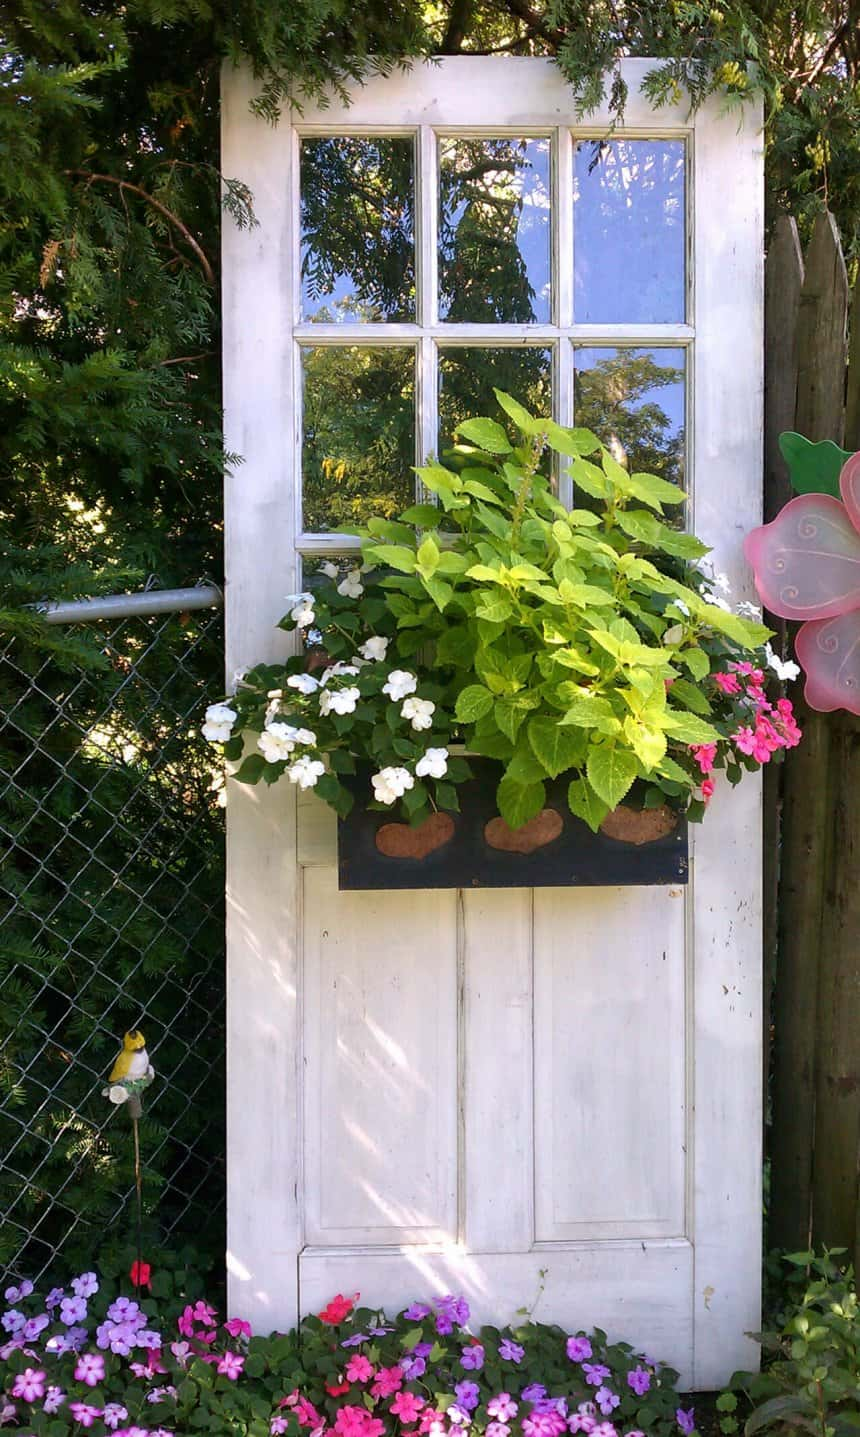 old door projects pinterest artistic and practical repurposed ideas garden doors barn wall hanging home decor decorating with vintage for windows make creative